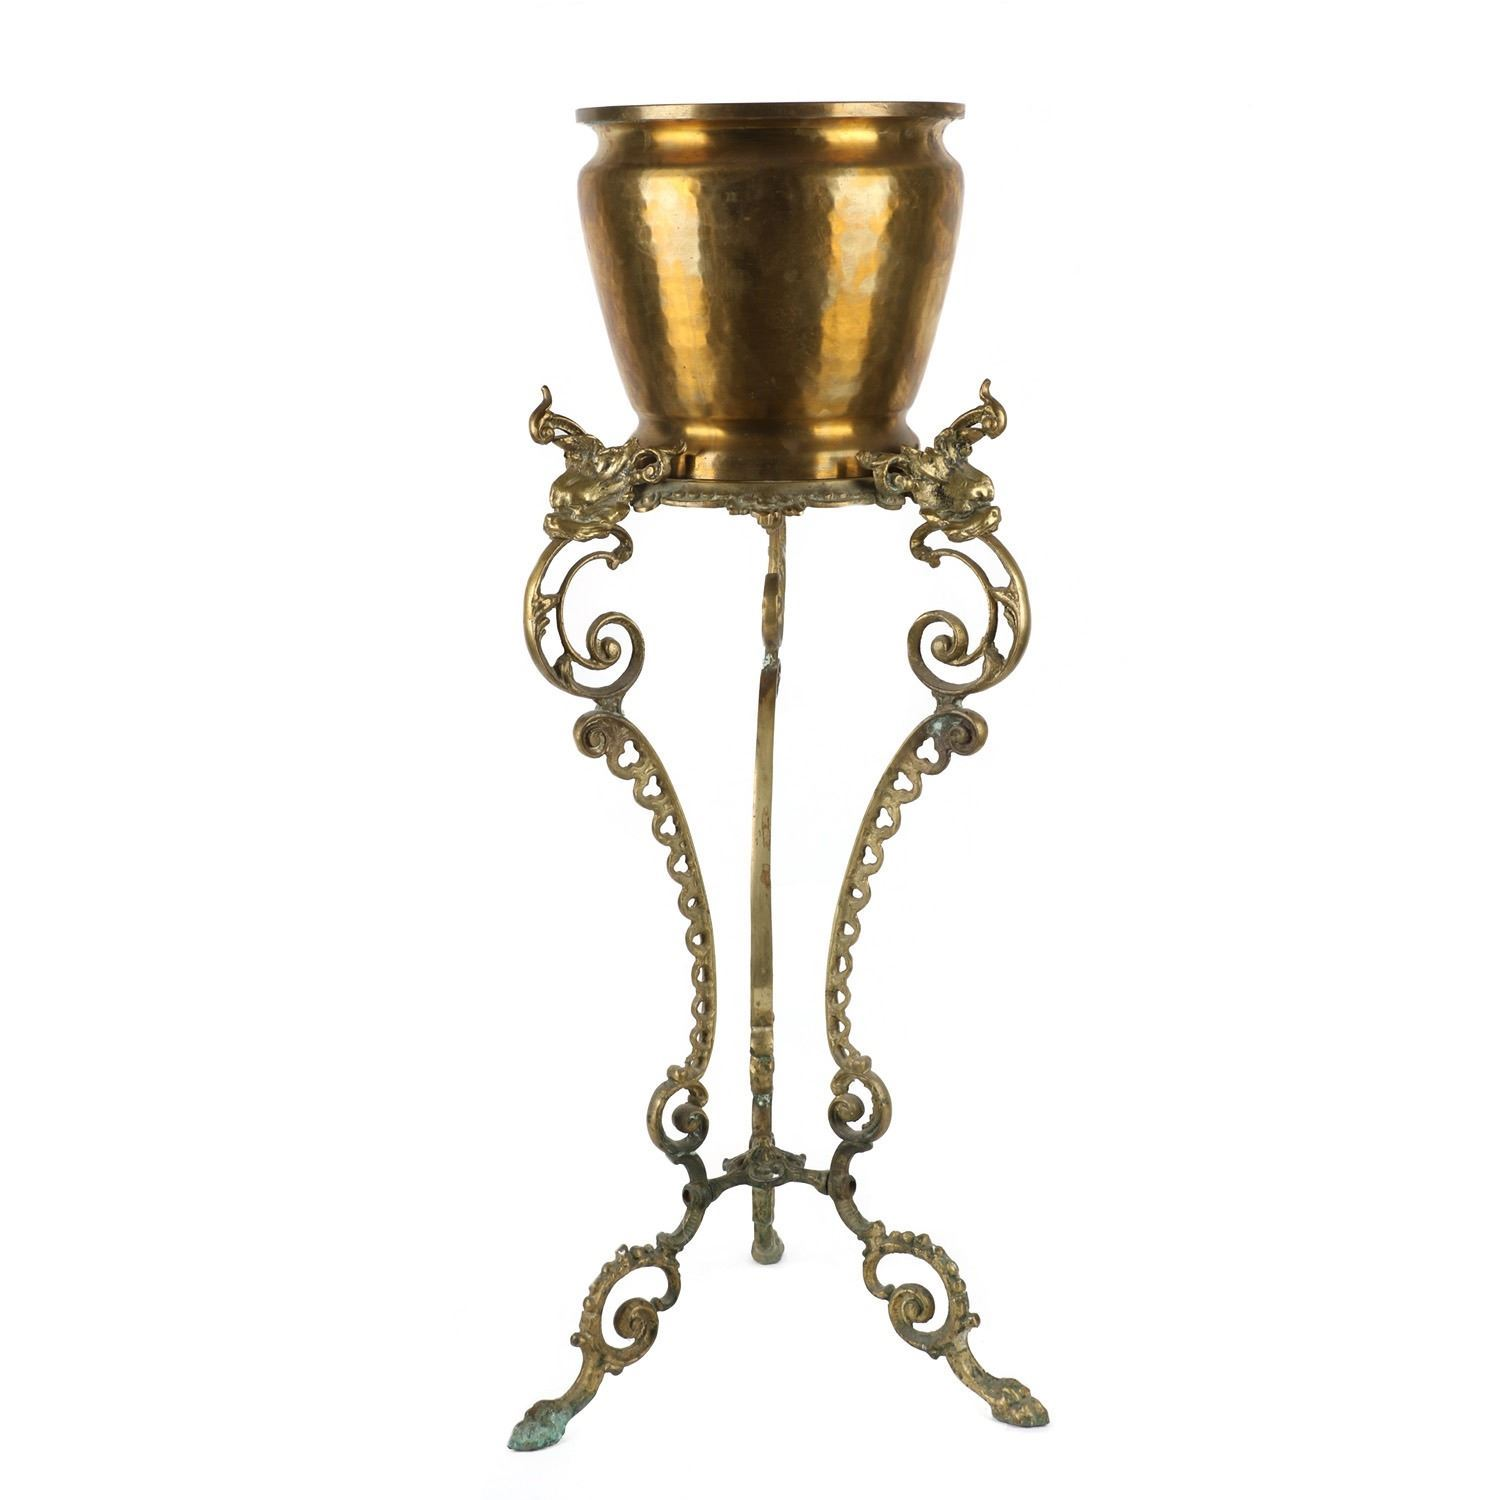 Image 1 Figural Cast Brass Plant Stand